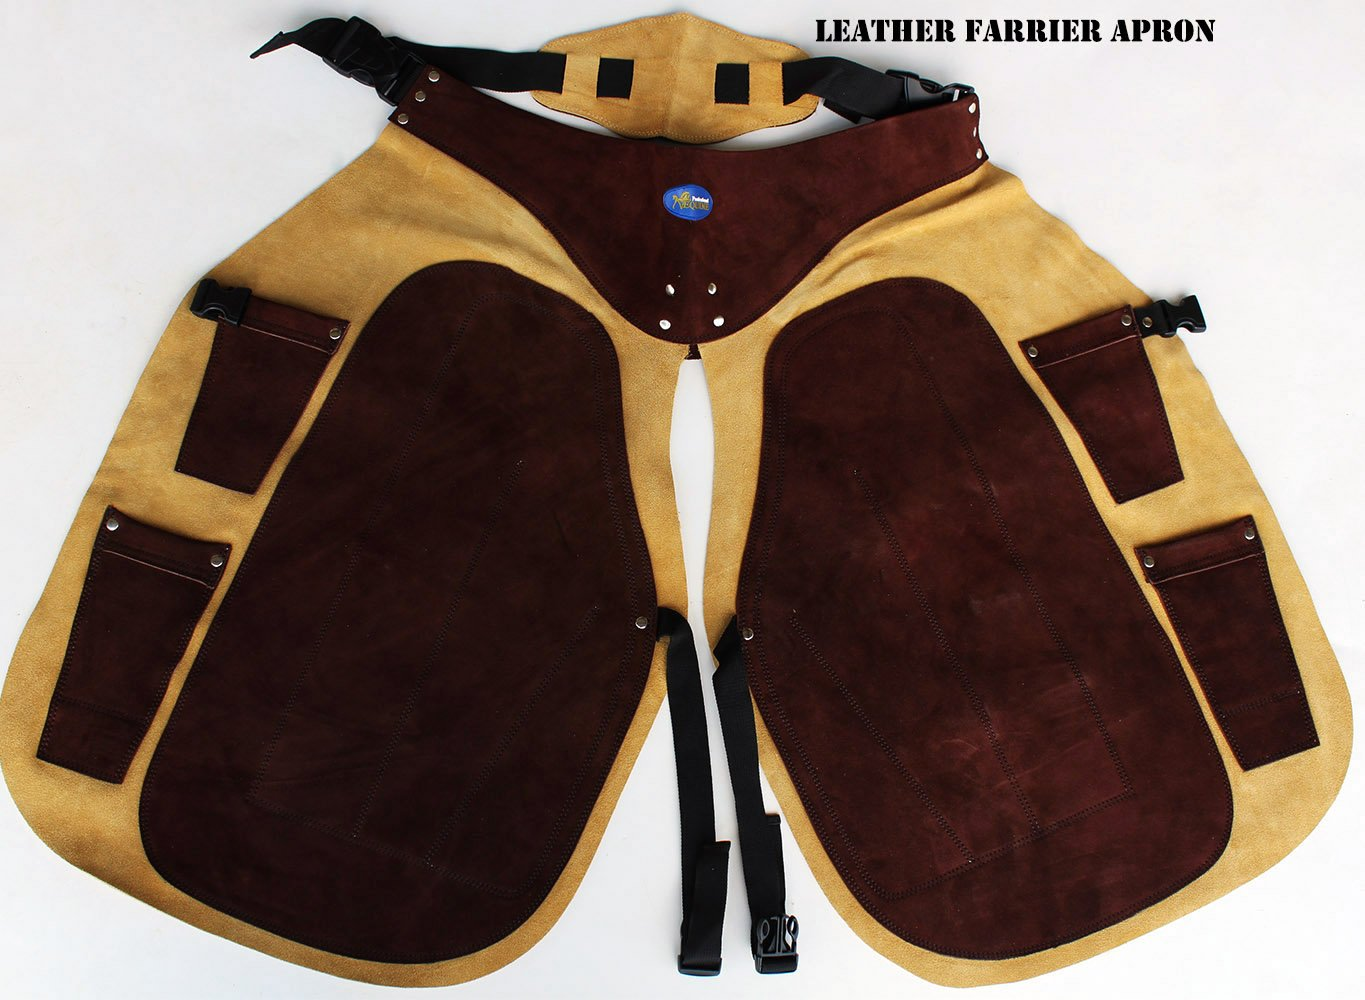 Pro Equine Western Leather Fully Adjustable Horse Farrier Apron Fits All 23116 by Pro Rider